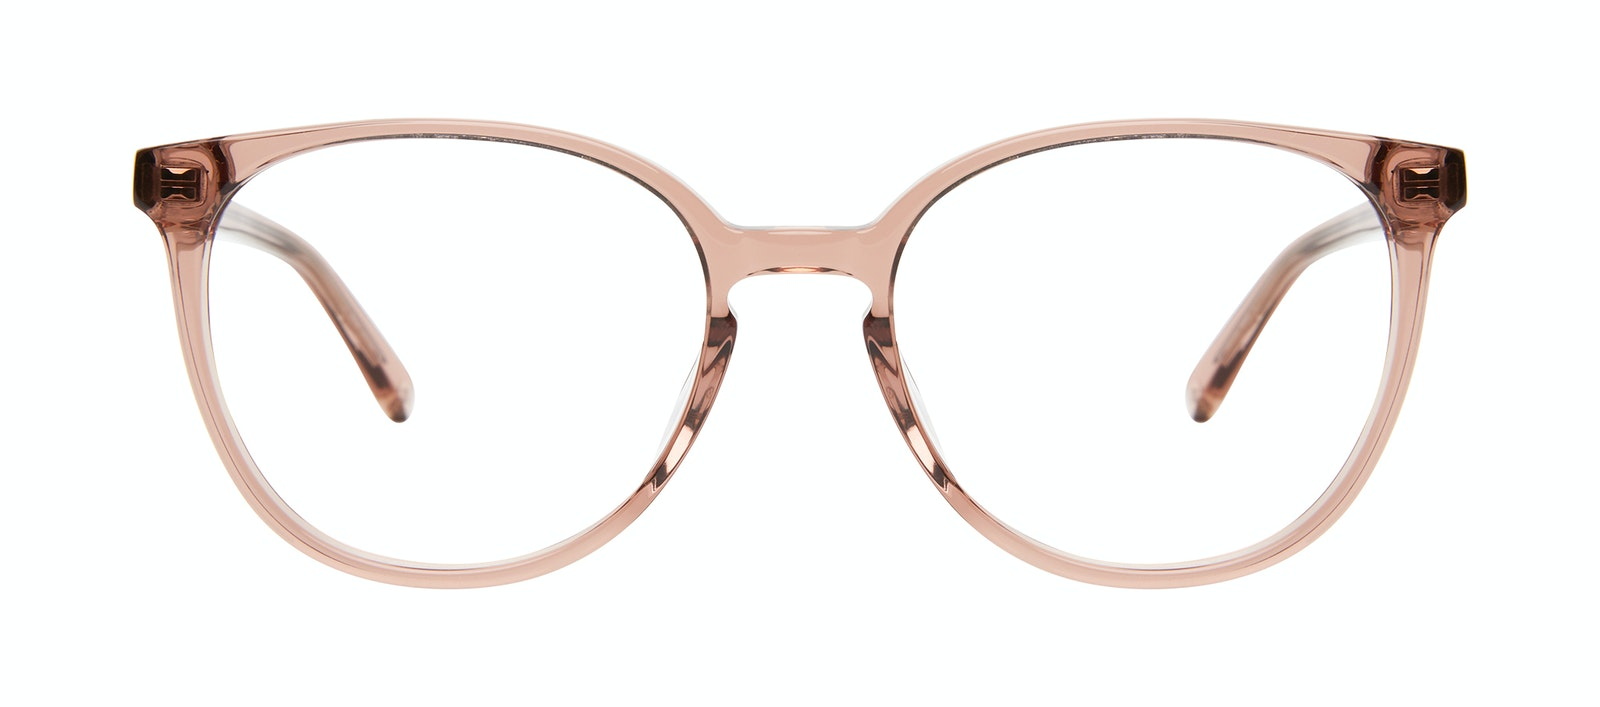 Affordable Fashion Glasses Round Eyeglasses Women Impression Rose Front